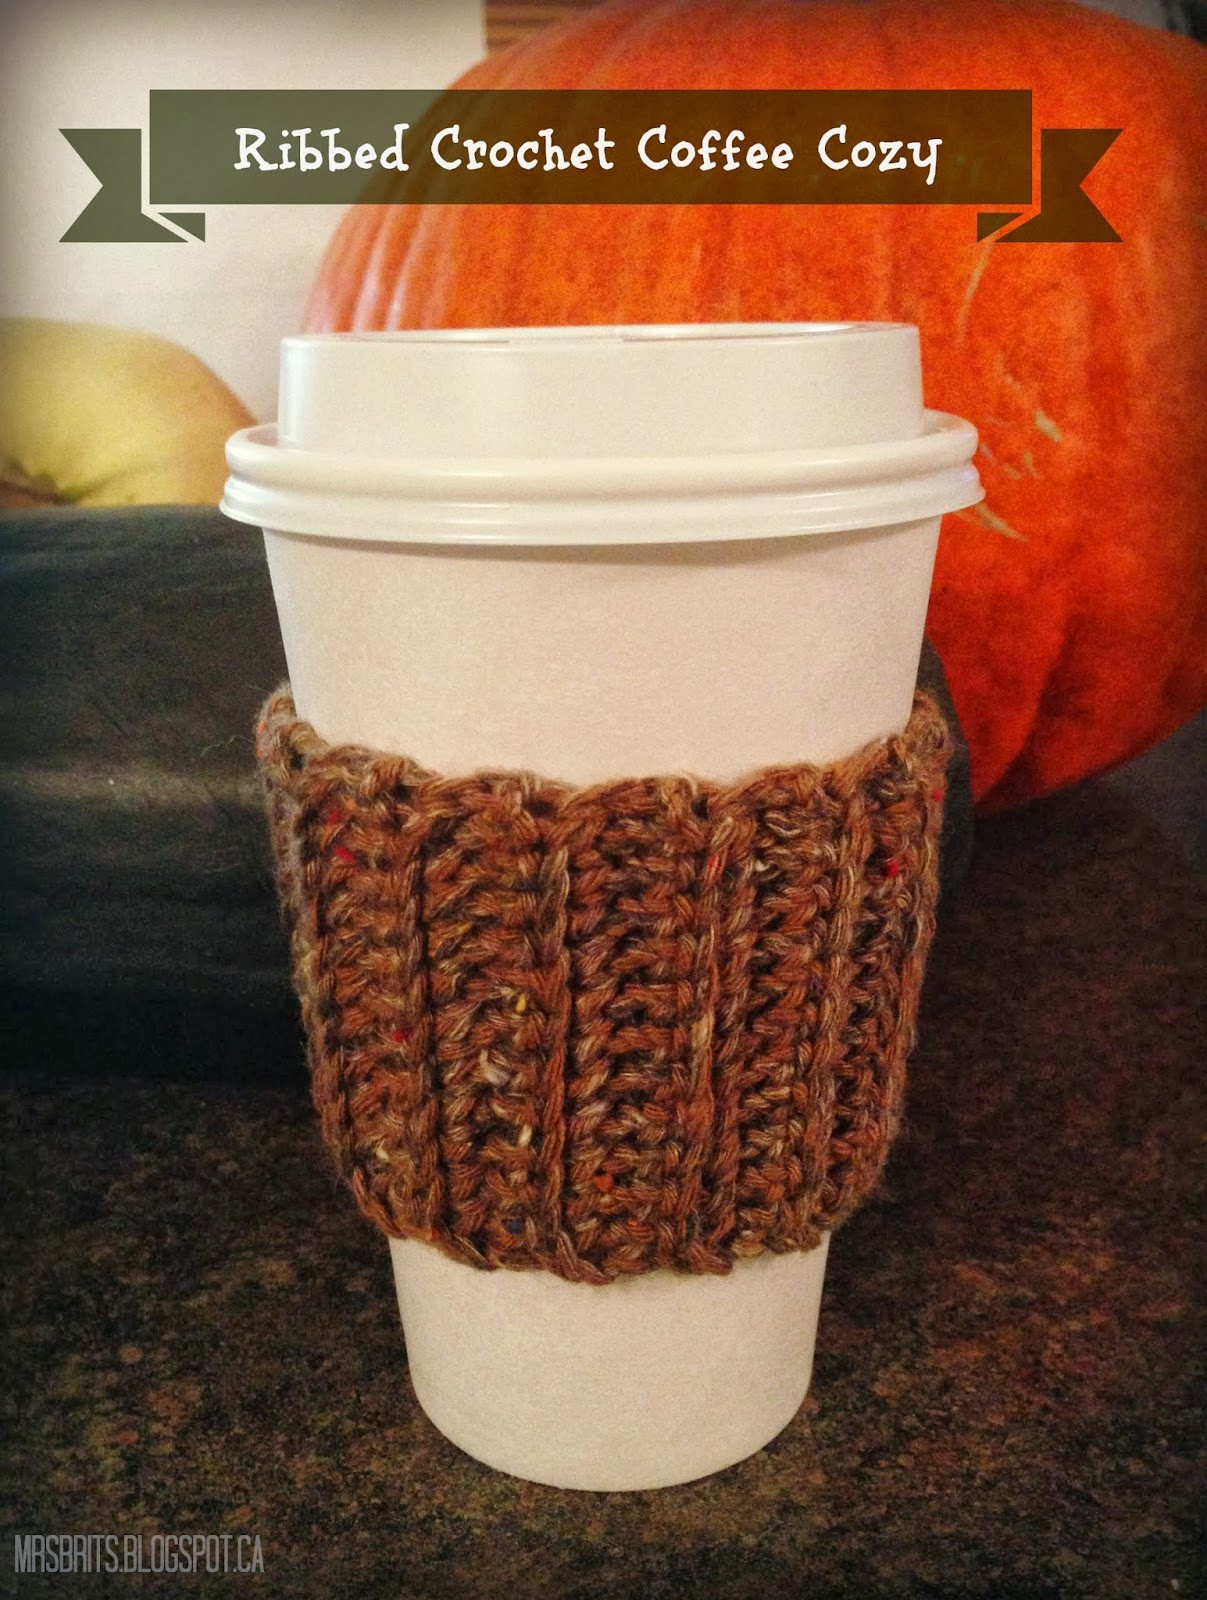 Crochet Coffee Cup Cozy Unique Mrsbrits Ribbed Coffee Cozy Crochet Pattern Of Crochet Coffee Cup Cozy Unique Mrsbrits Ribbed Coffee Cozy Crochet Pattern